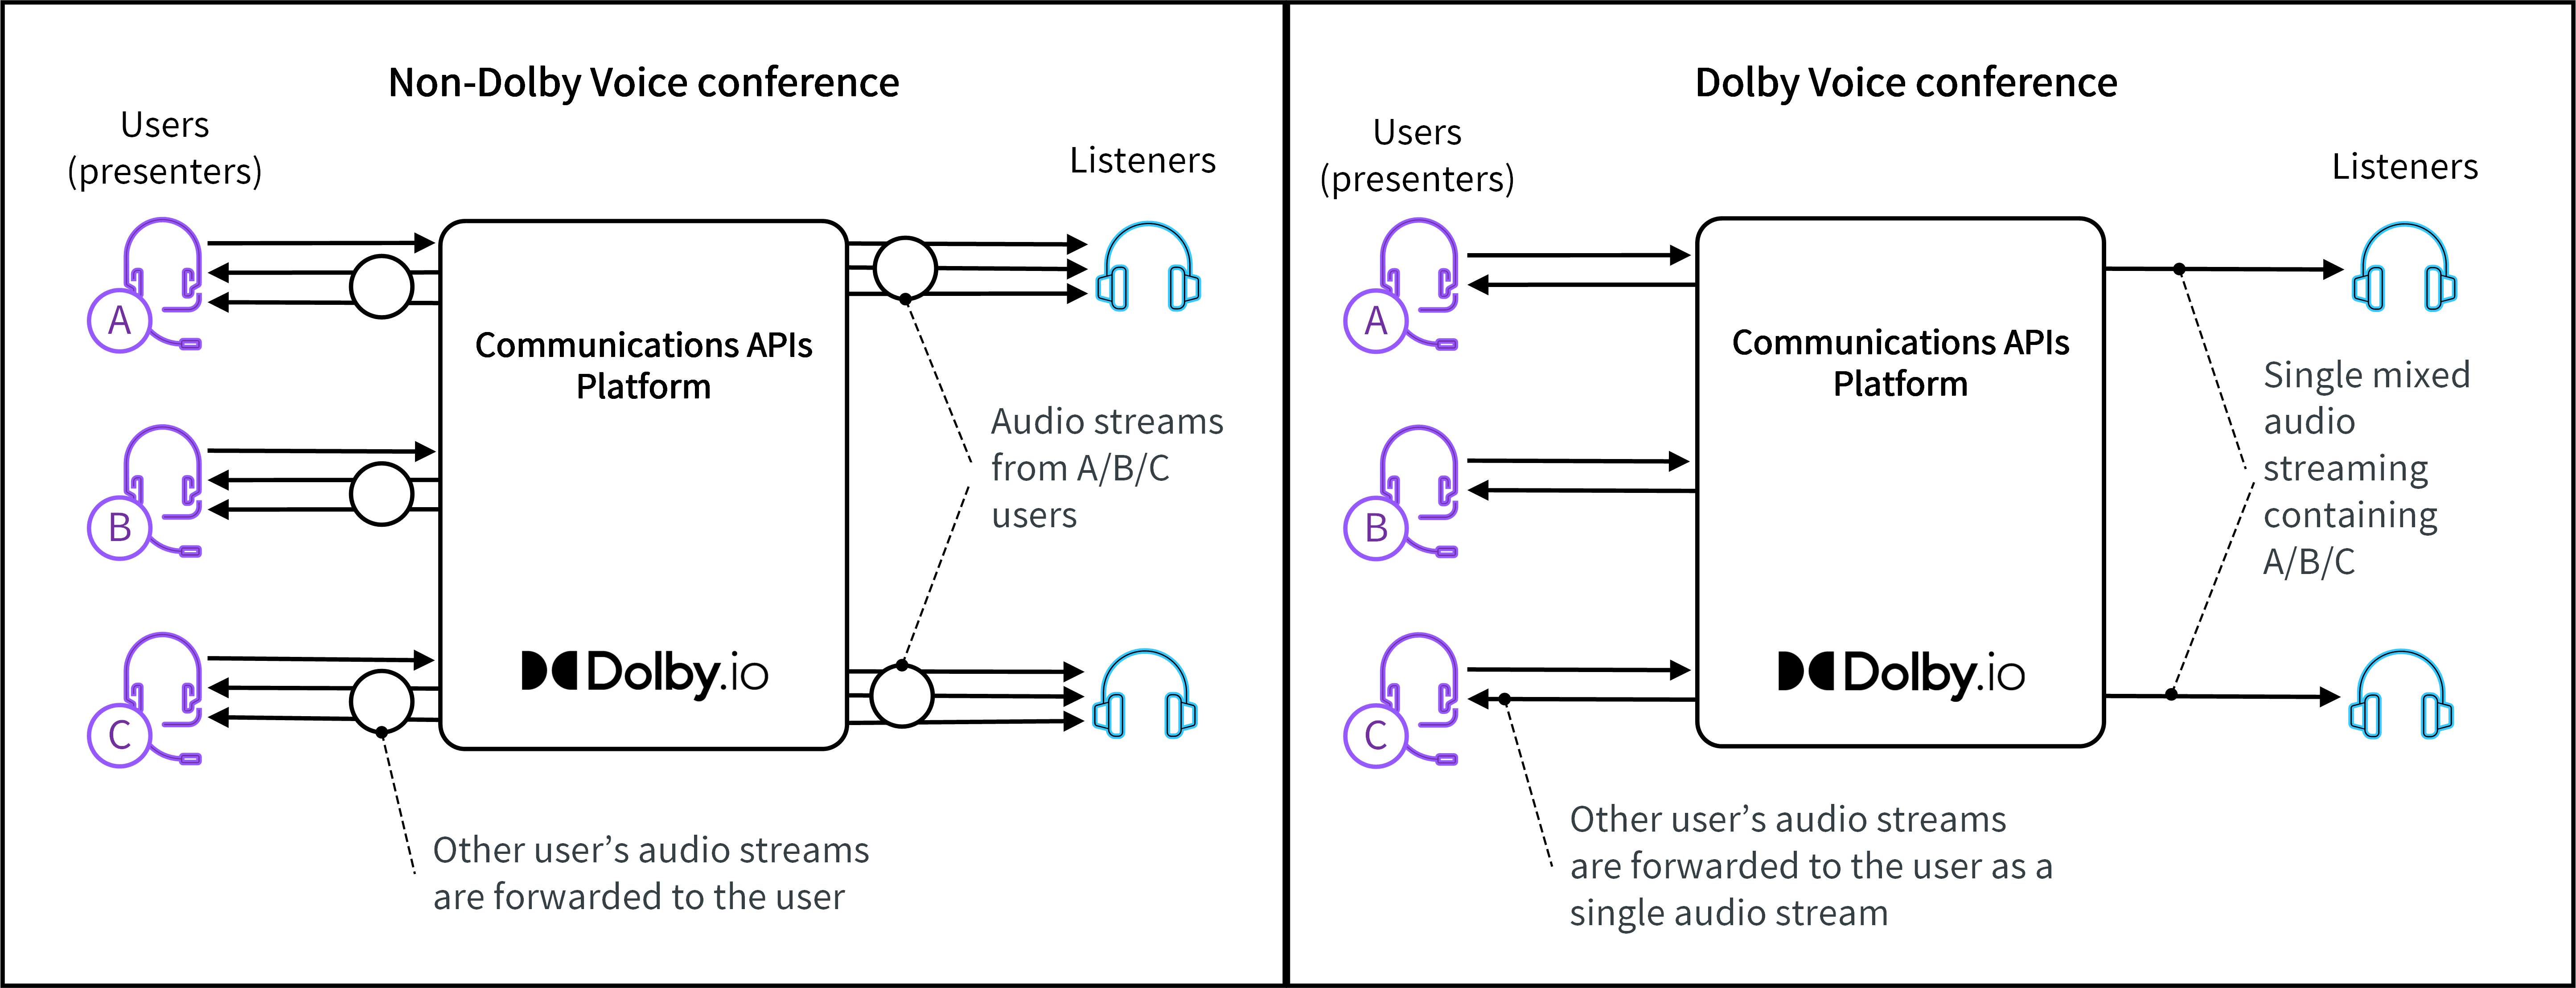 This graphic illustrates the difference between a non-Dolby Voice and Dolby Voice conference